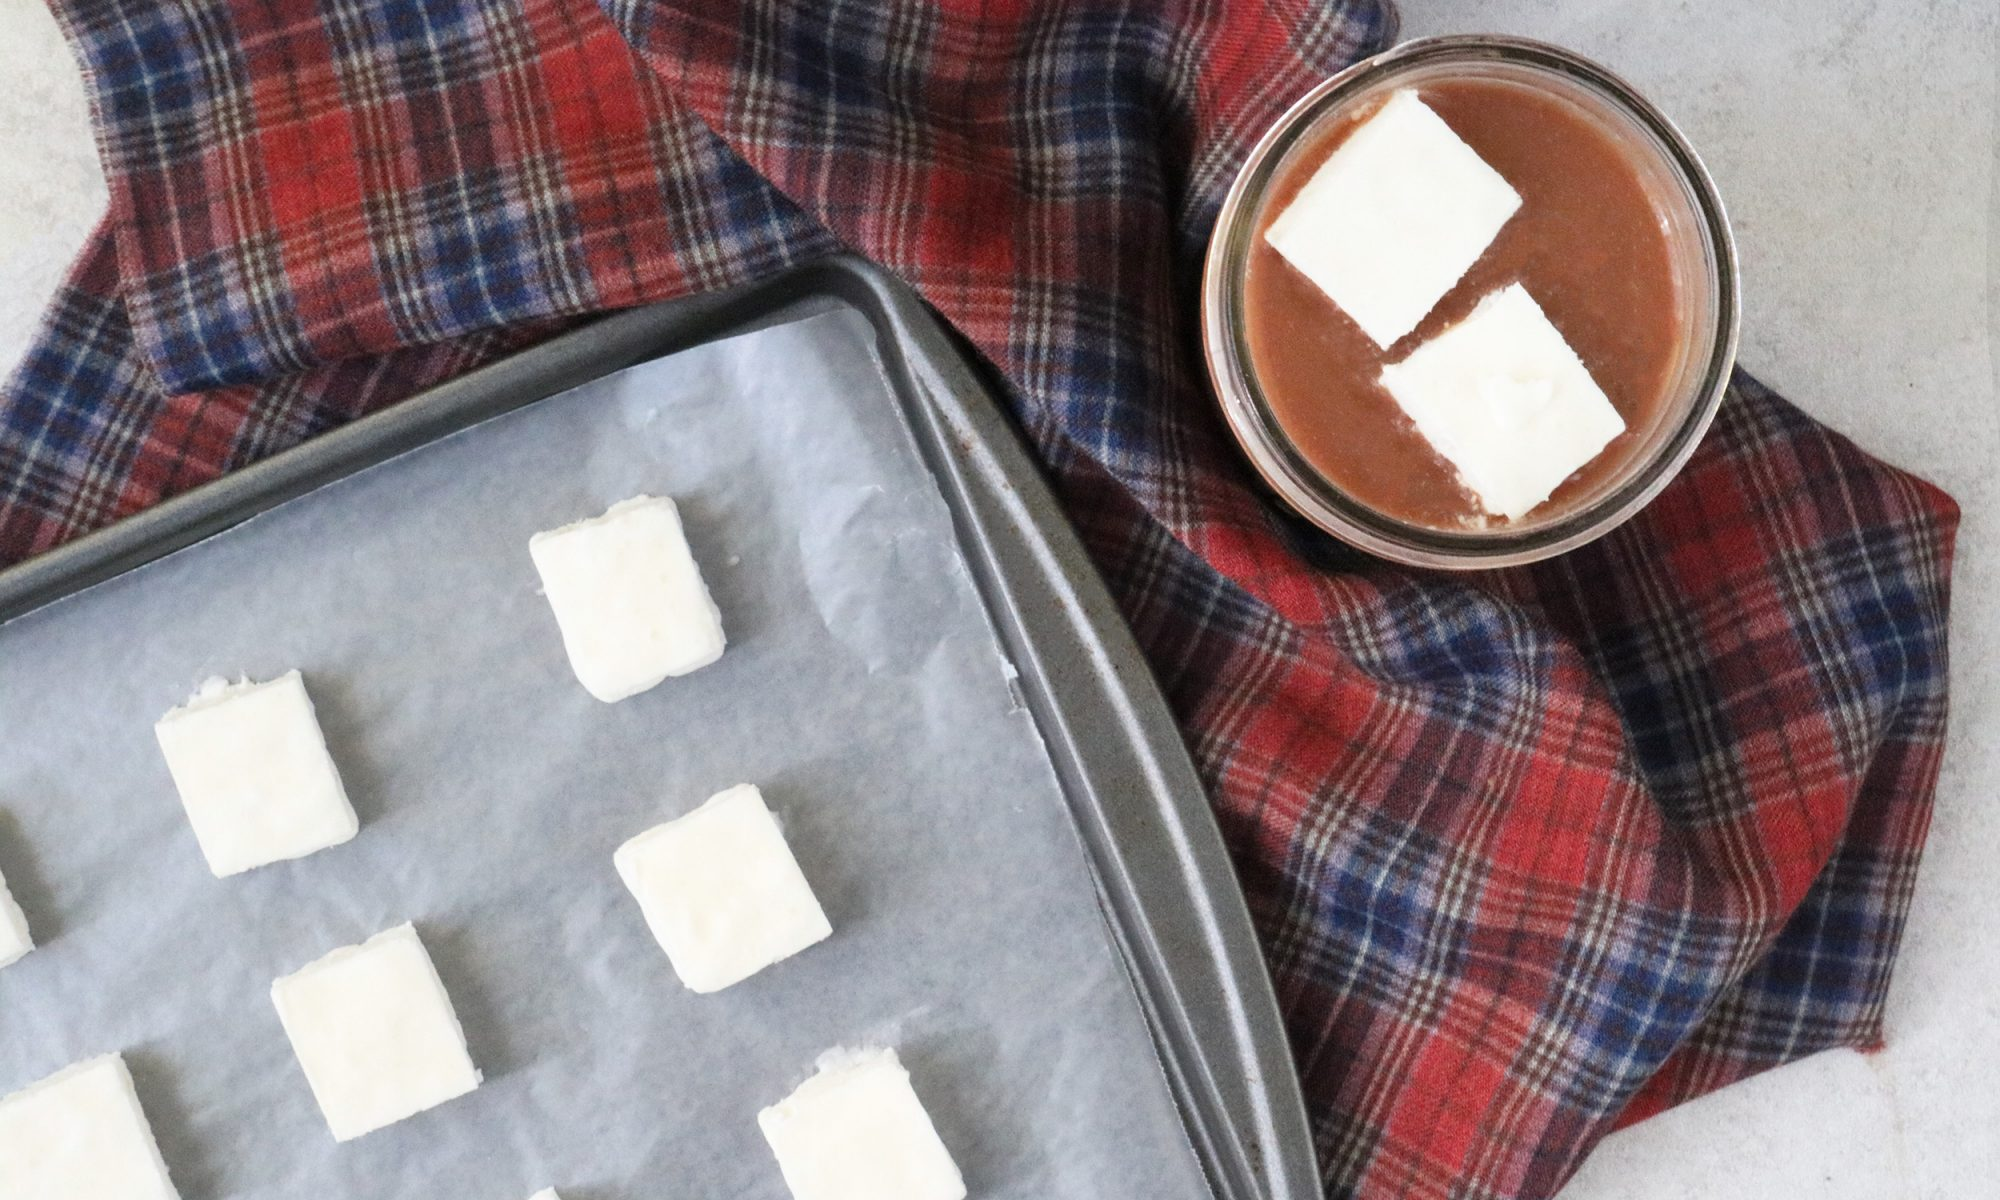 EC: How to Make Whipped Cream Ice Cubes